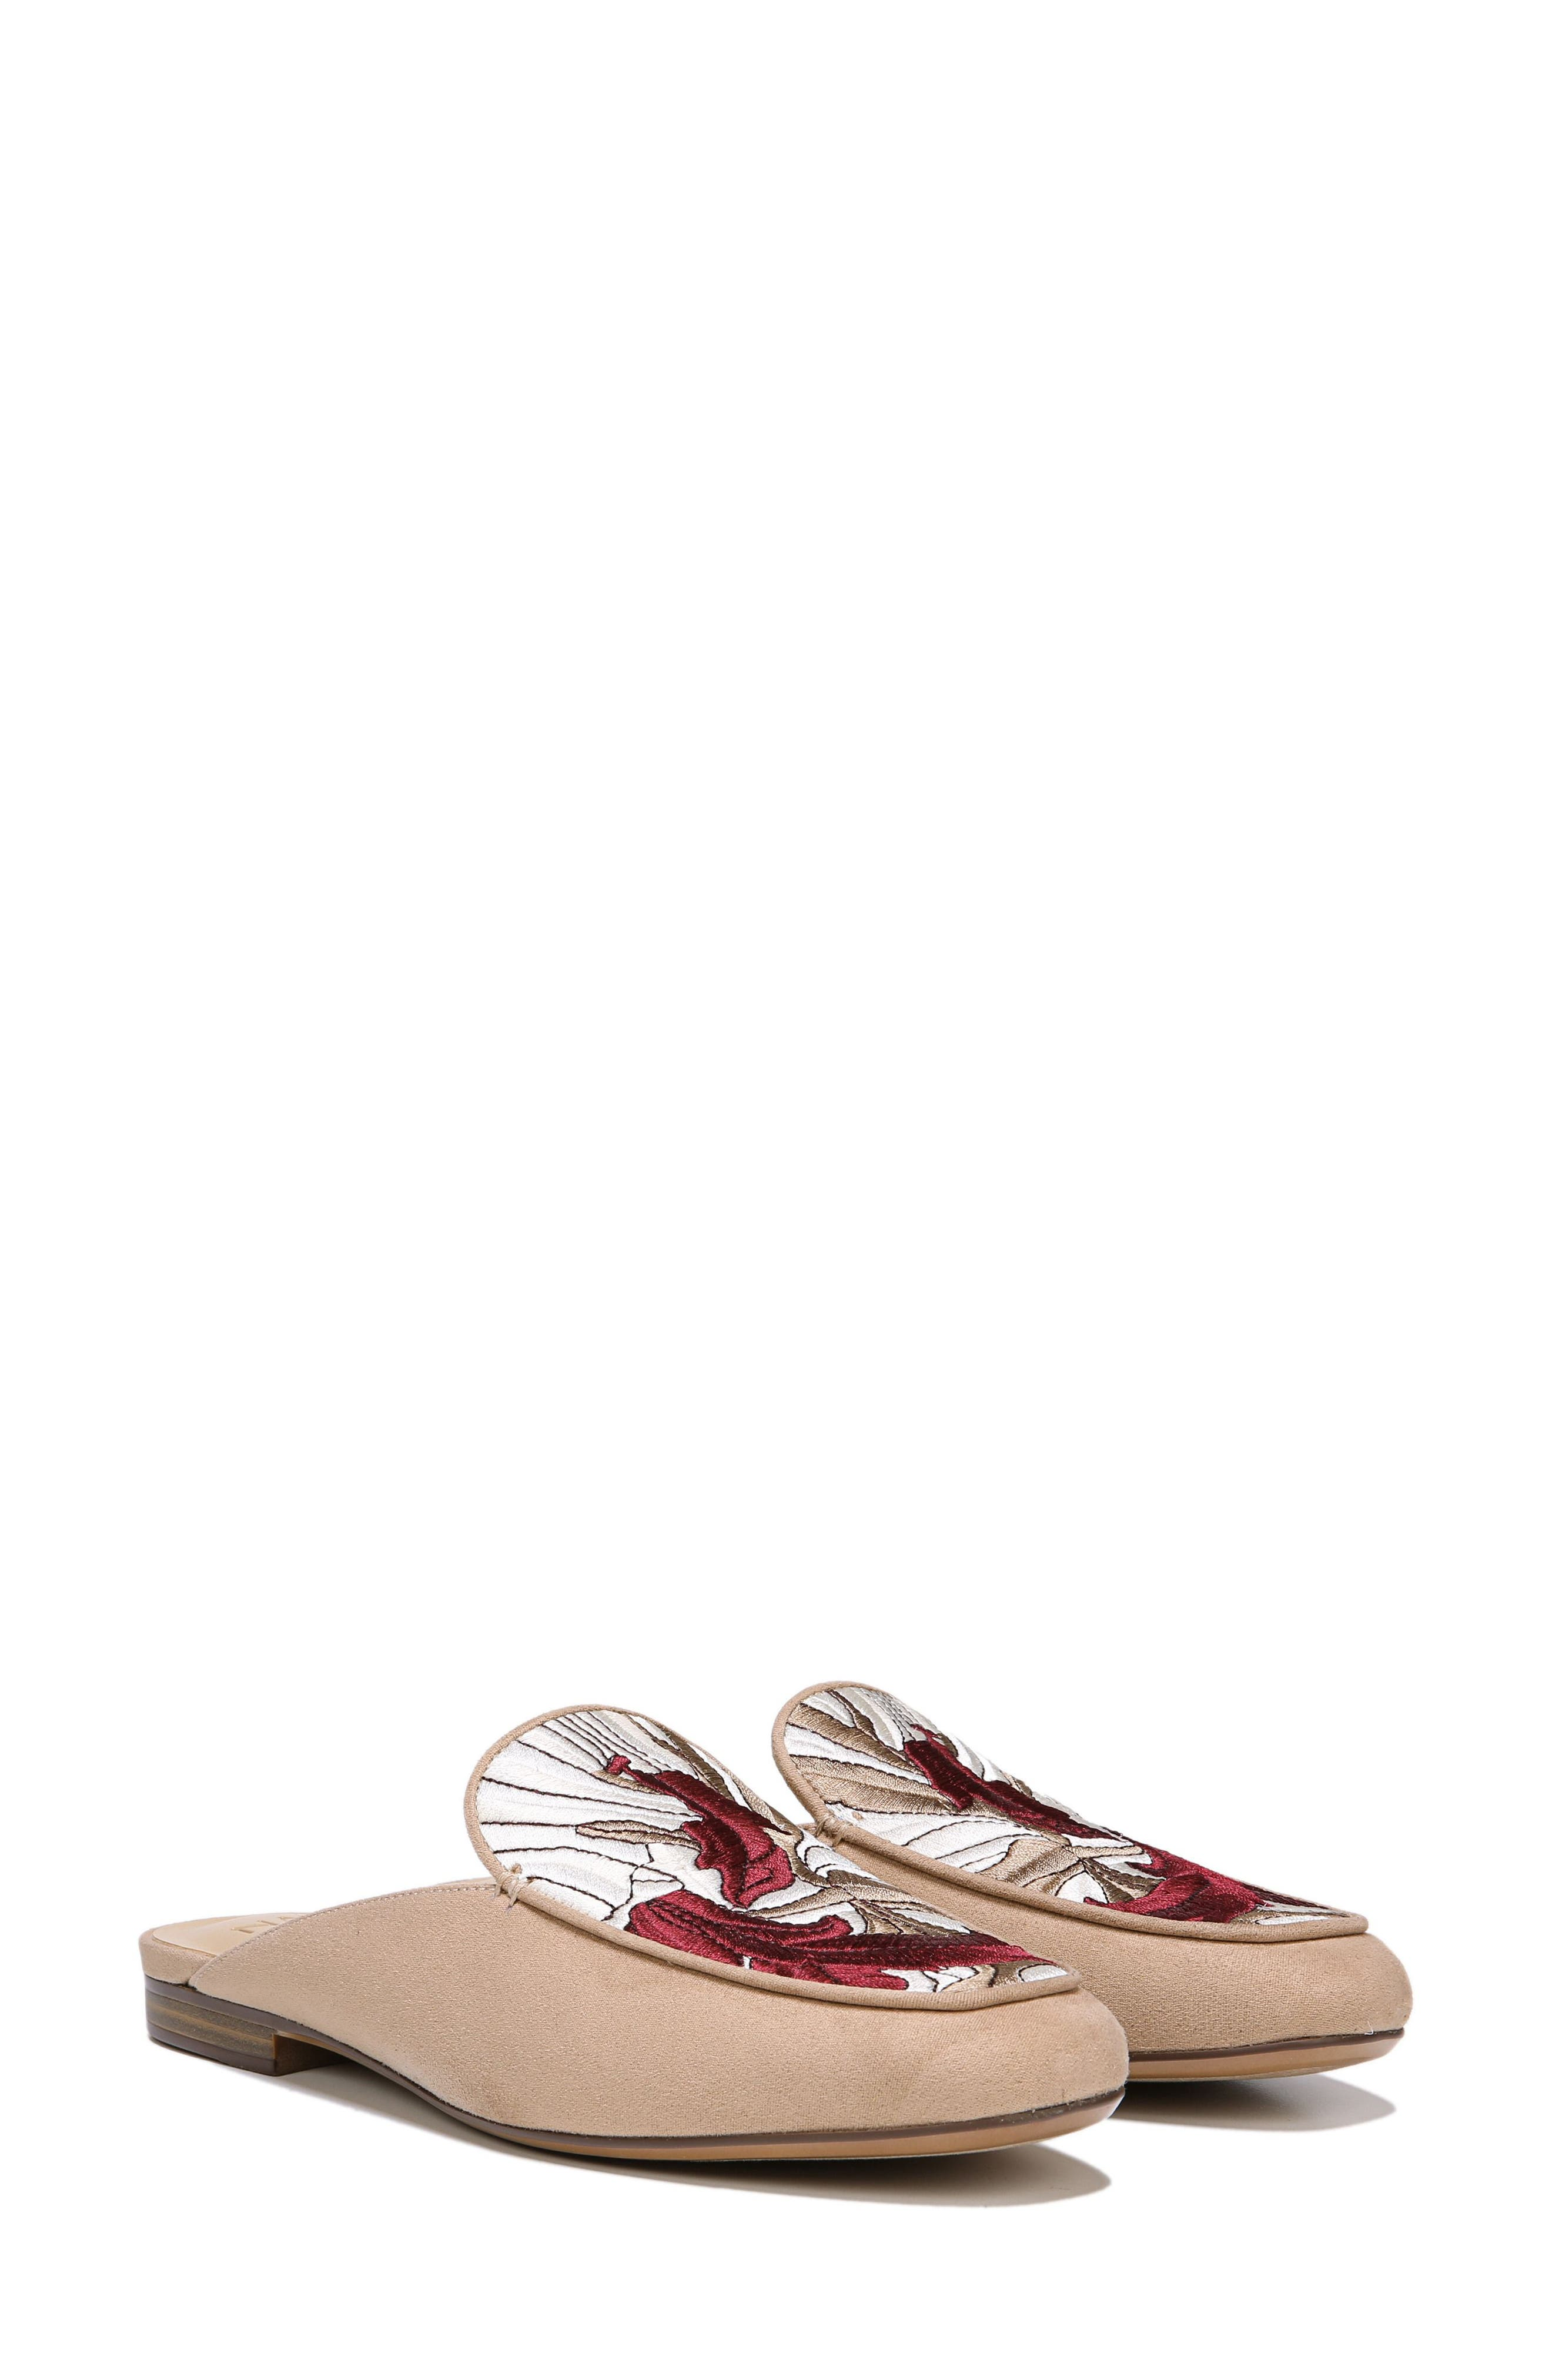 Eden II Embroidered Mule,                             Alternate thumbnail 8, color,                             BARLEY FABRIC